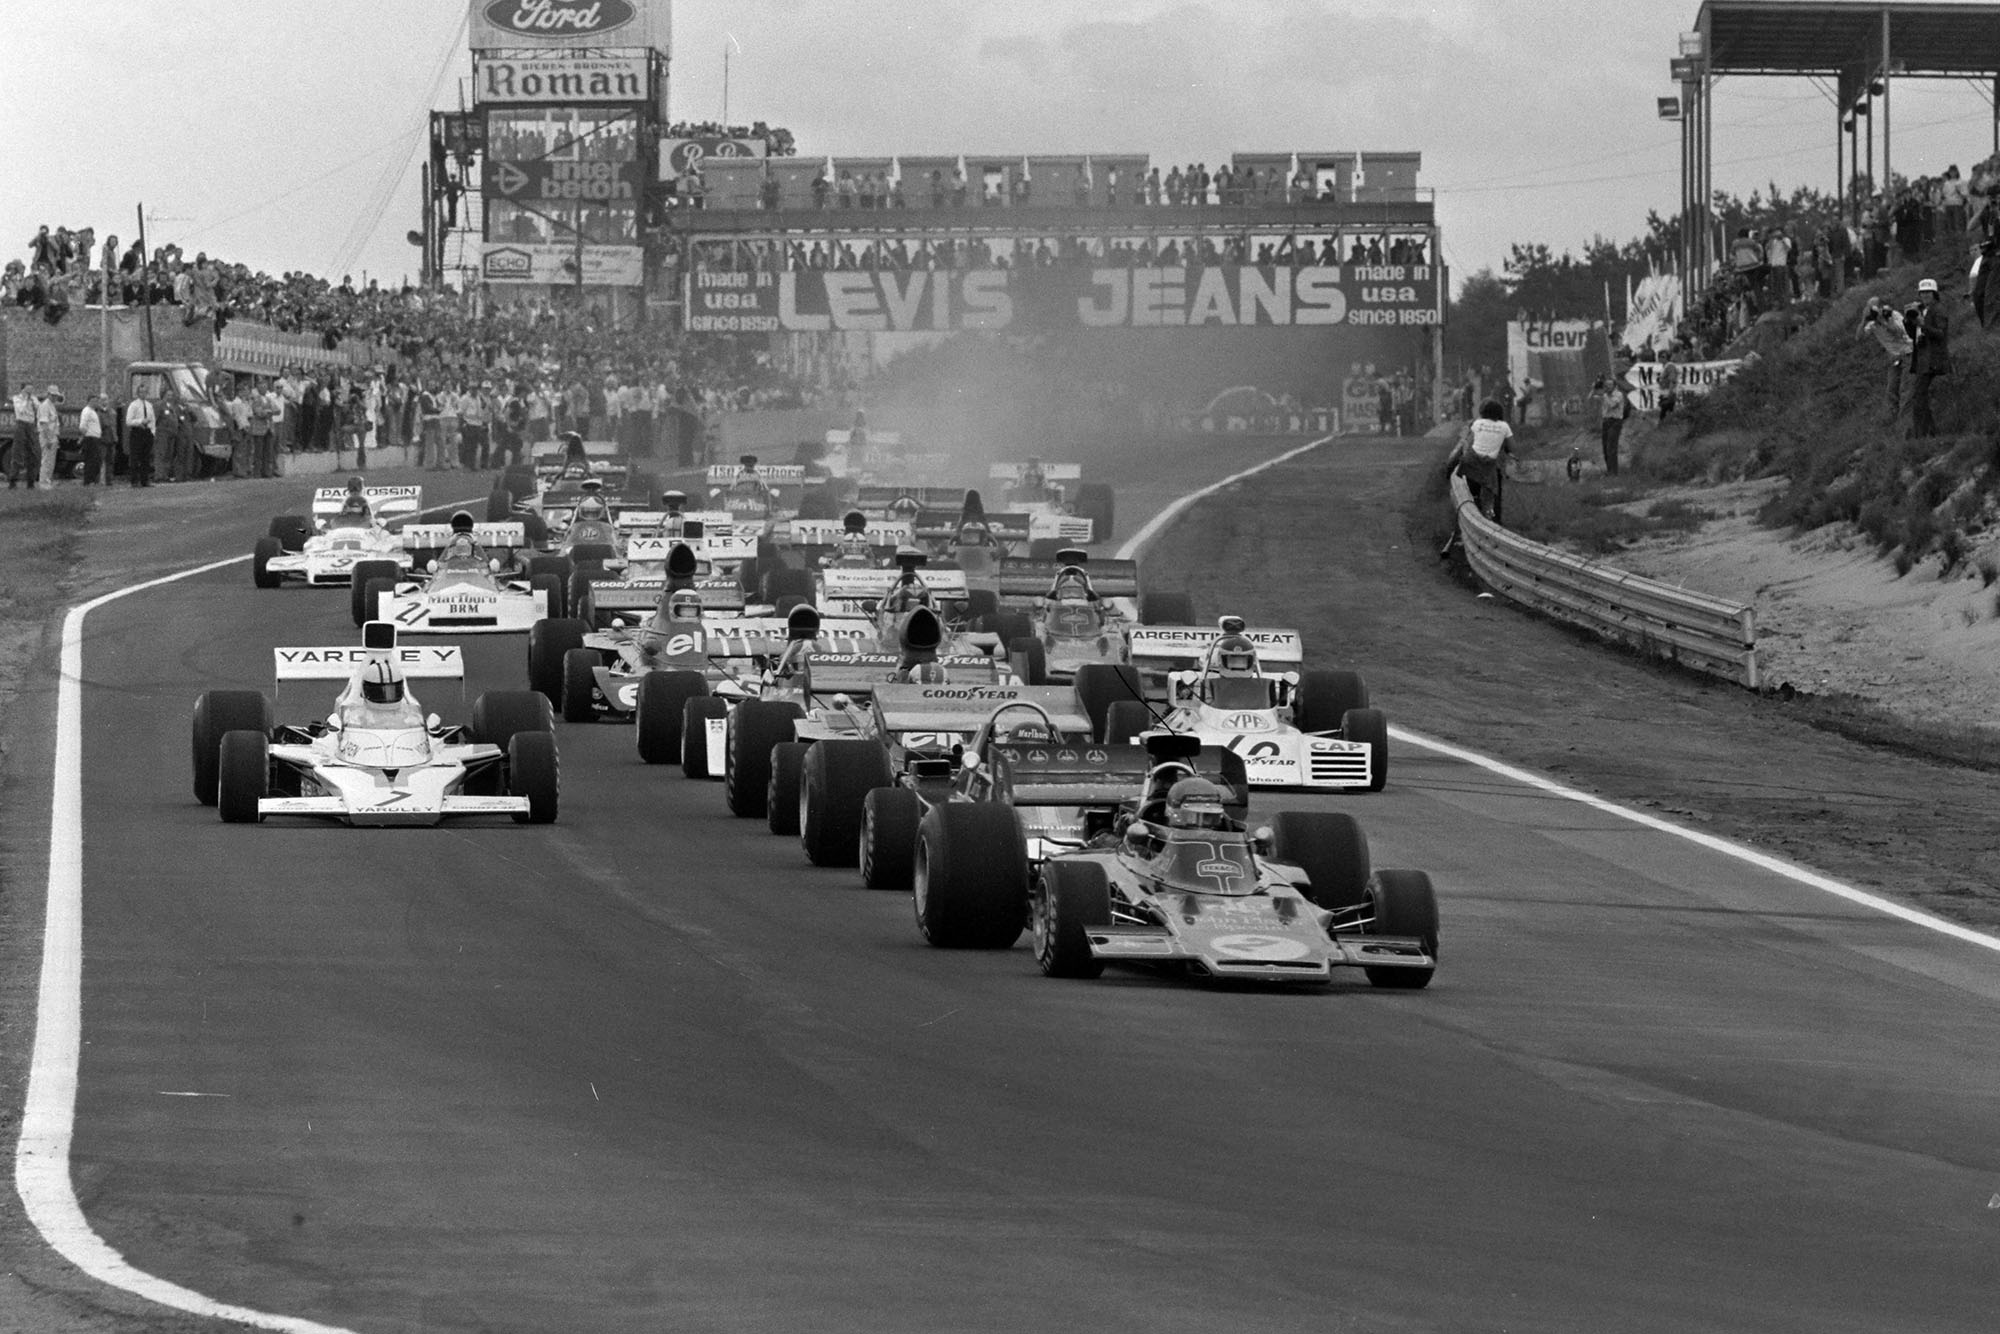 Ronnie Peterson leads the field into the first corner at the 1973 Belgian Grand Prix